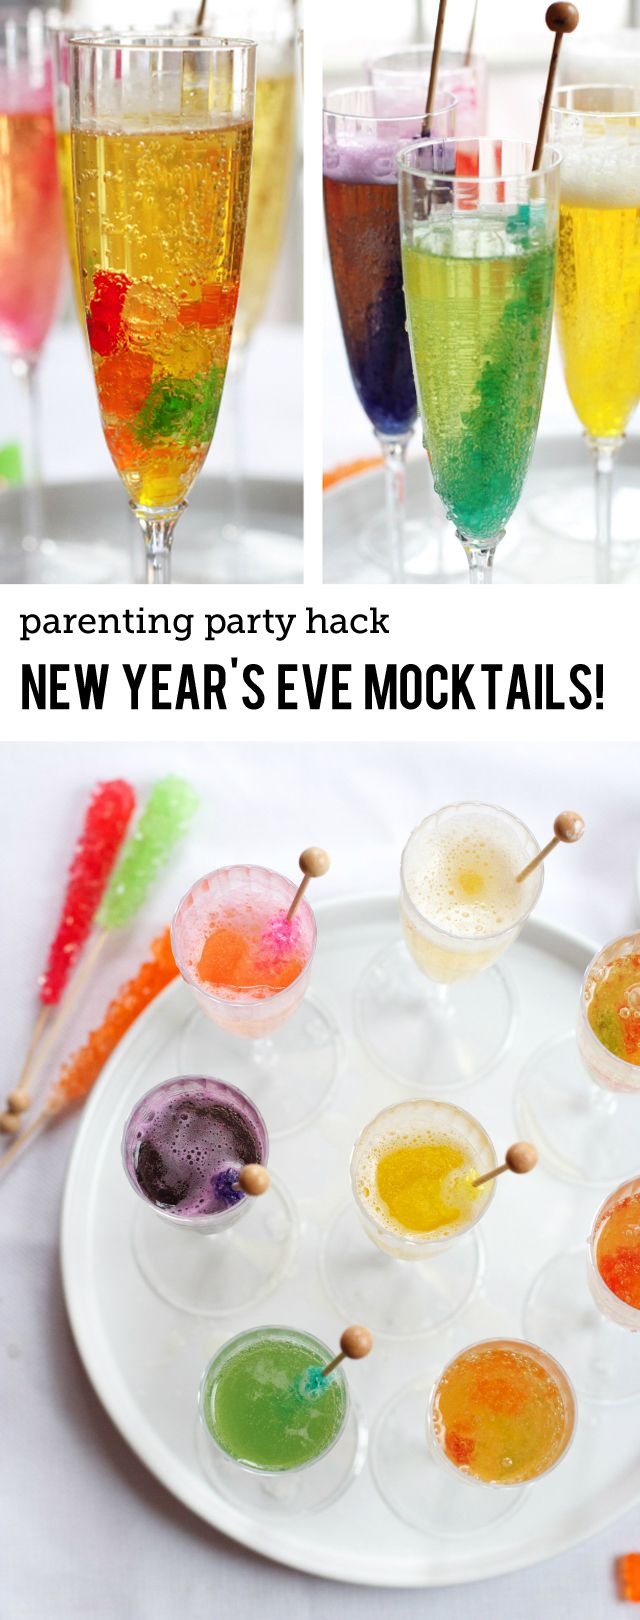 Kids Cocktail Party Ideas Part - 16: New Yearu0027s Eve Mocktails For Kids! Making One Or More Of These Yummy  Mocktails For Our Family New Yearu0027s Celebration This Year!